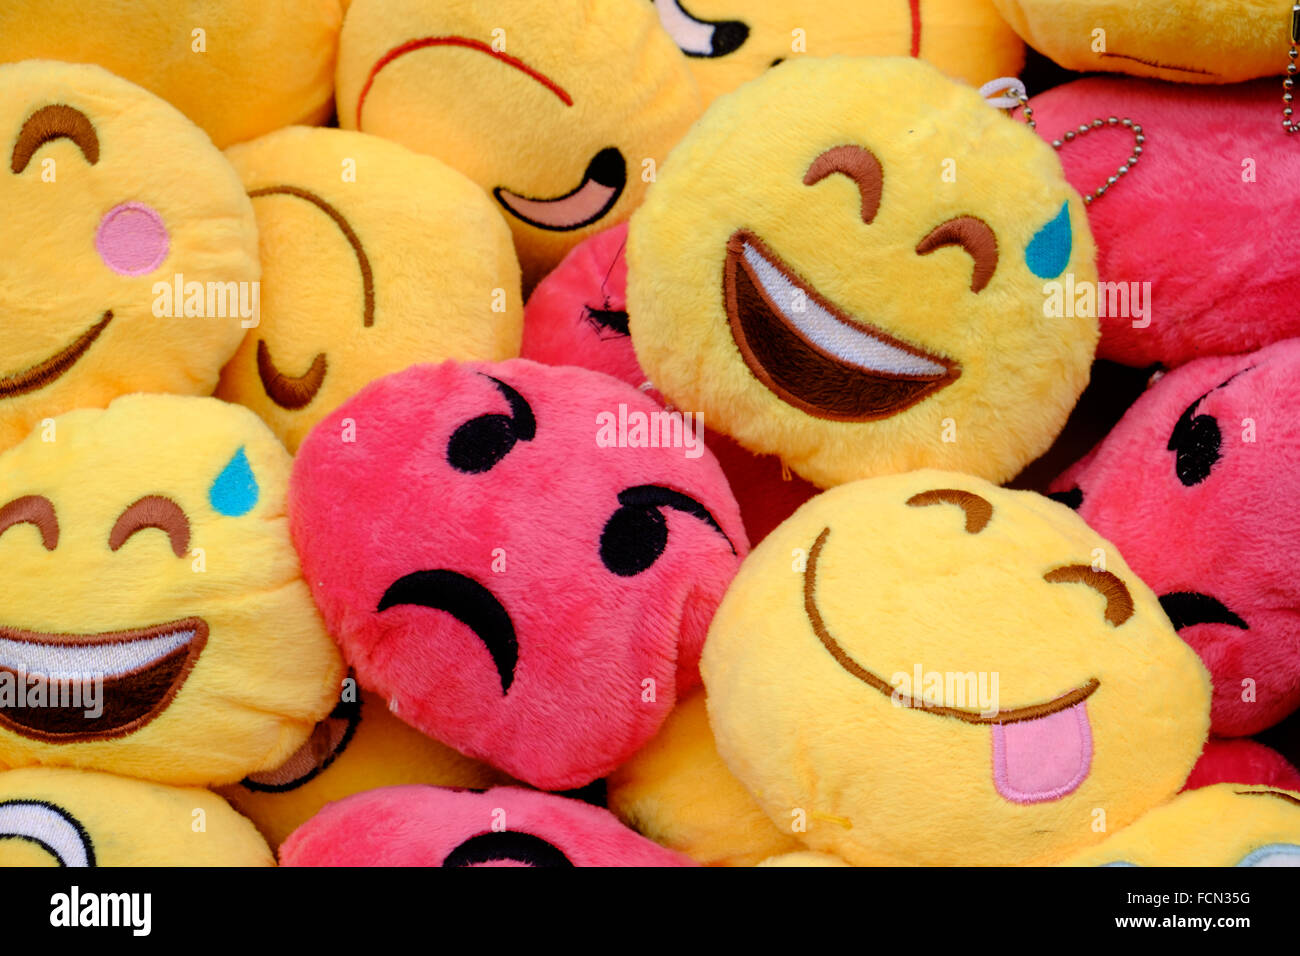 Angry face in a crowd of happy faces - Stock Image